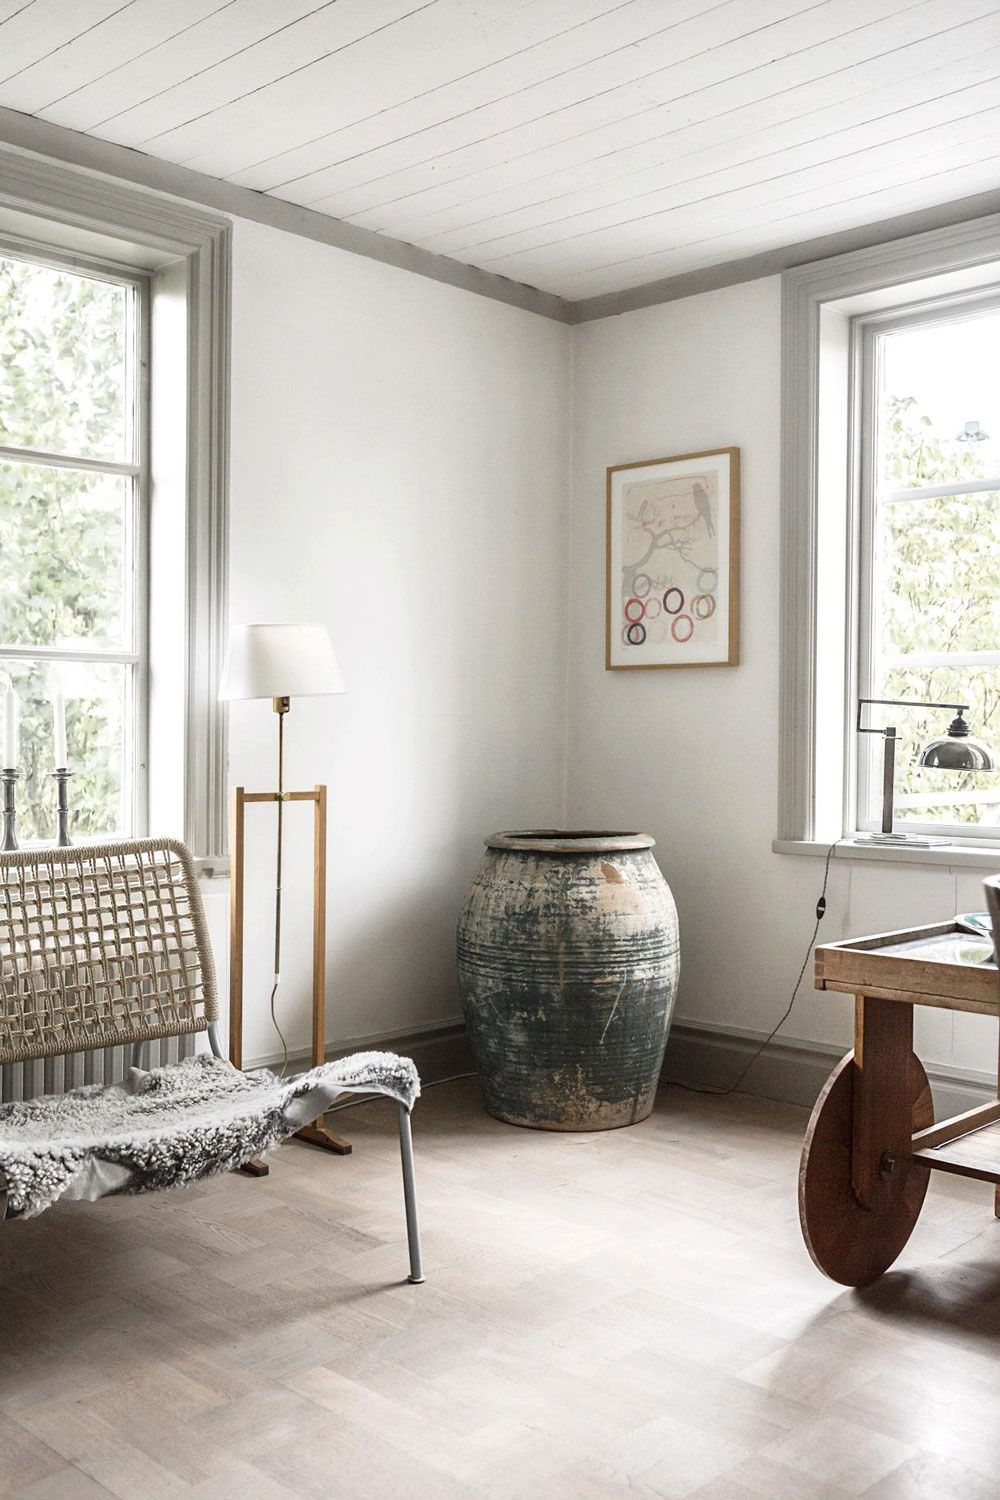 Dreaming Of This Serene Traditional Swedish Cabin Nordic Design My Scandinavian Home Home House Interior